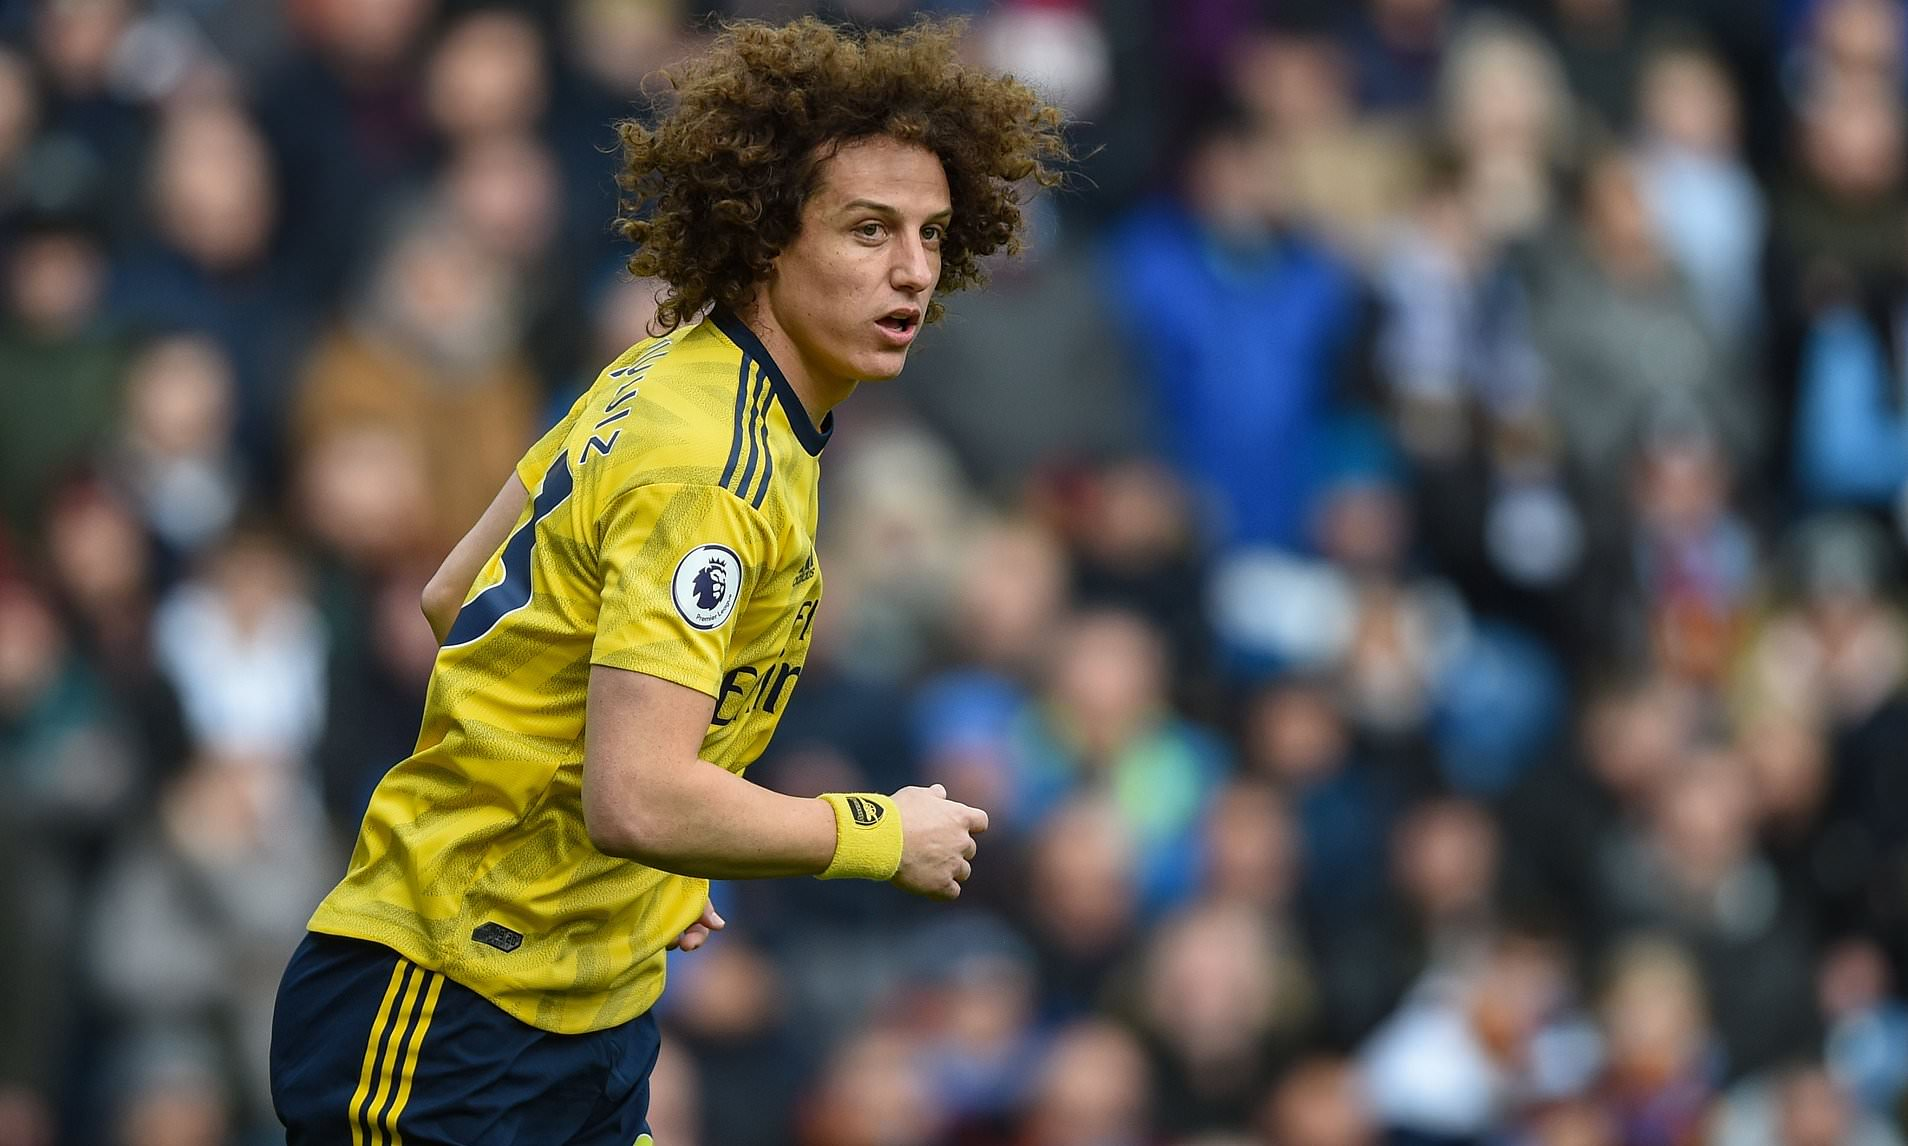 Luiz Admits Transfer Talks With Former Club Benfica Amid Arsenal Possible Exit